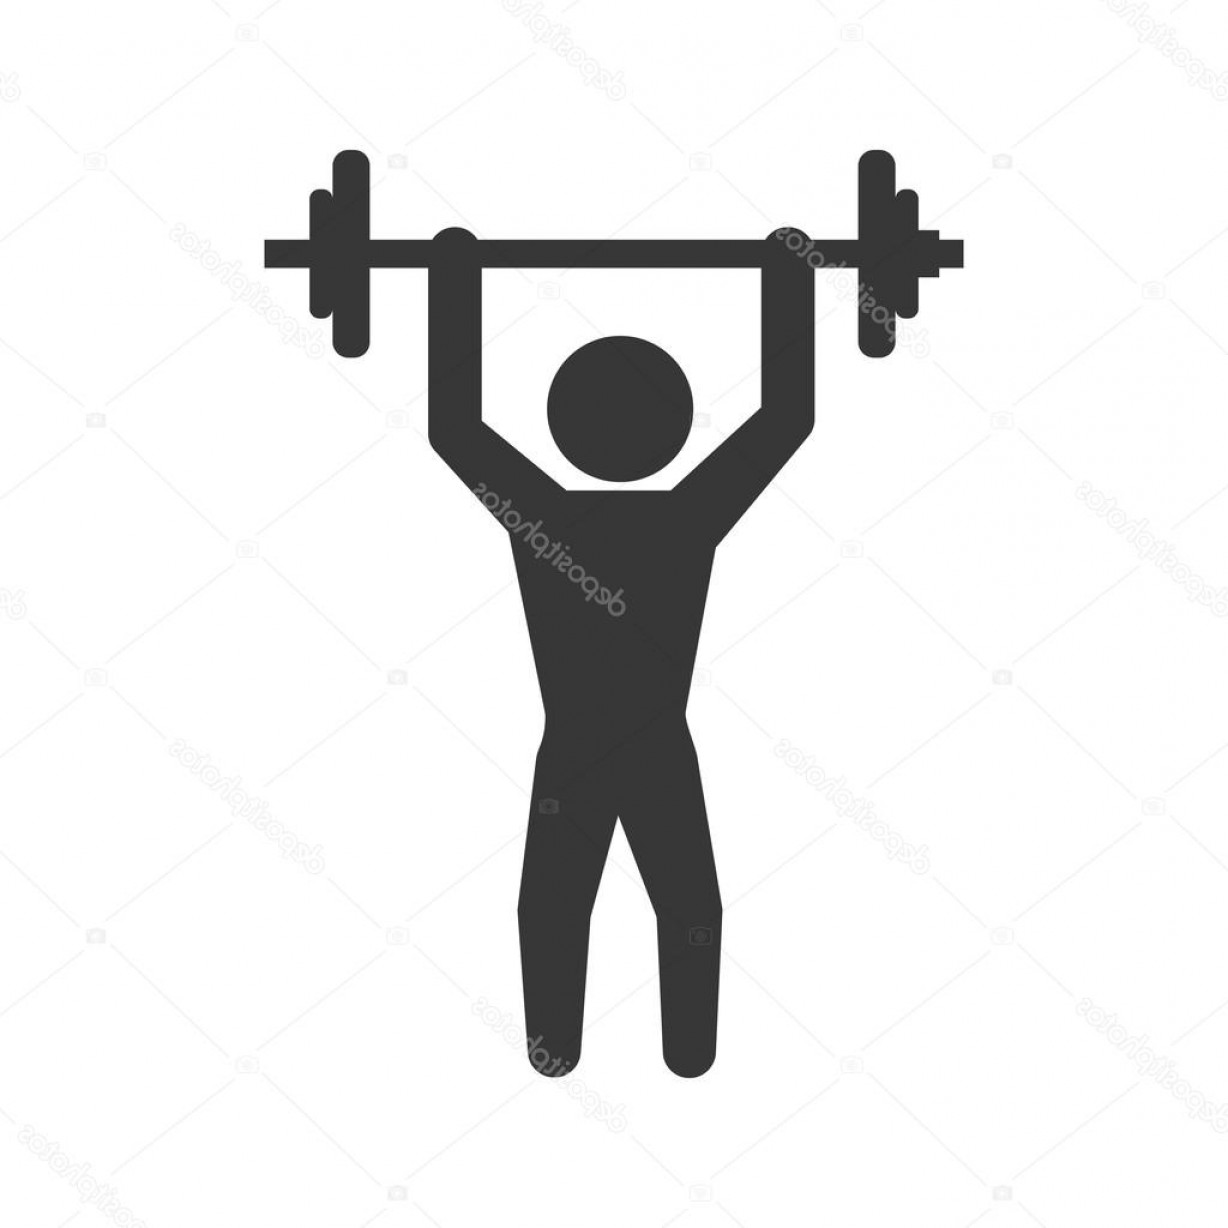 Weight Lifting Vector Graphics: Stock Illustration Weight Lifting Icon Healthy Lifestyle